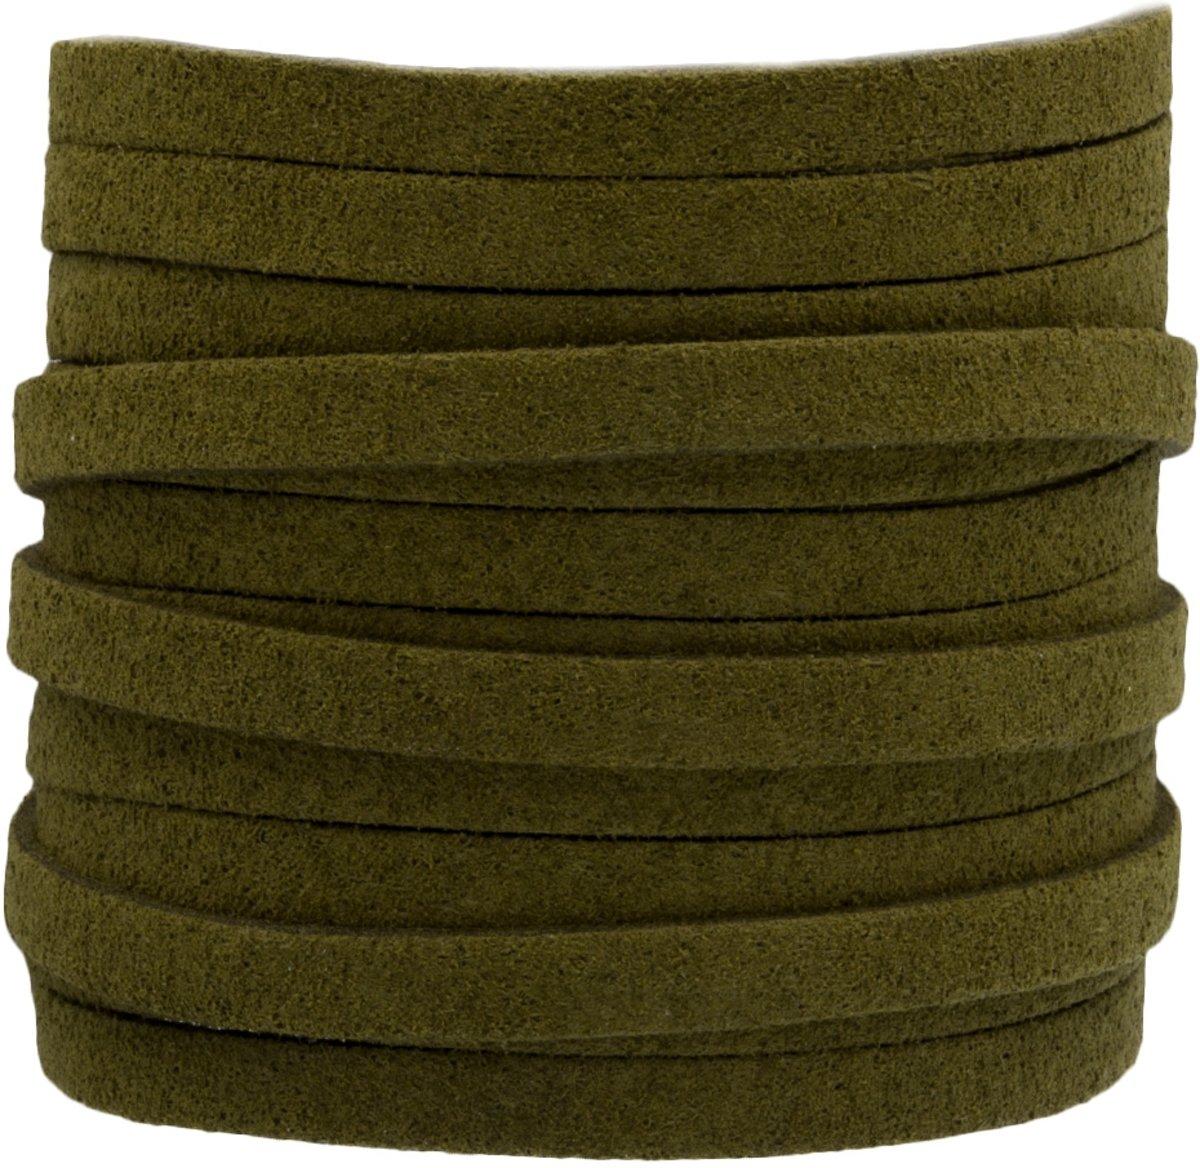 Faux Suede Veter (5 mm) Olive Green (5 Meter)